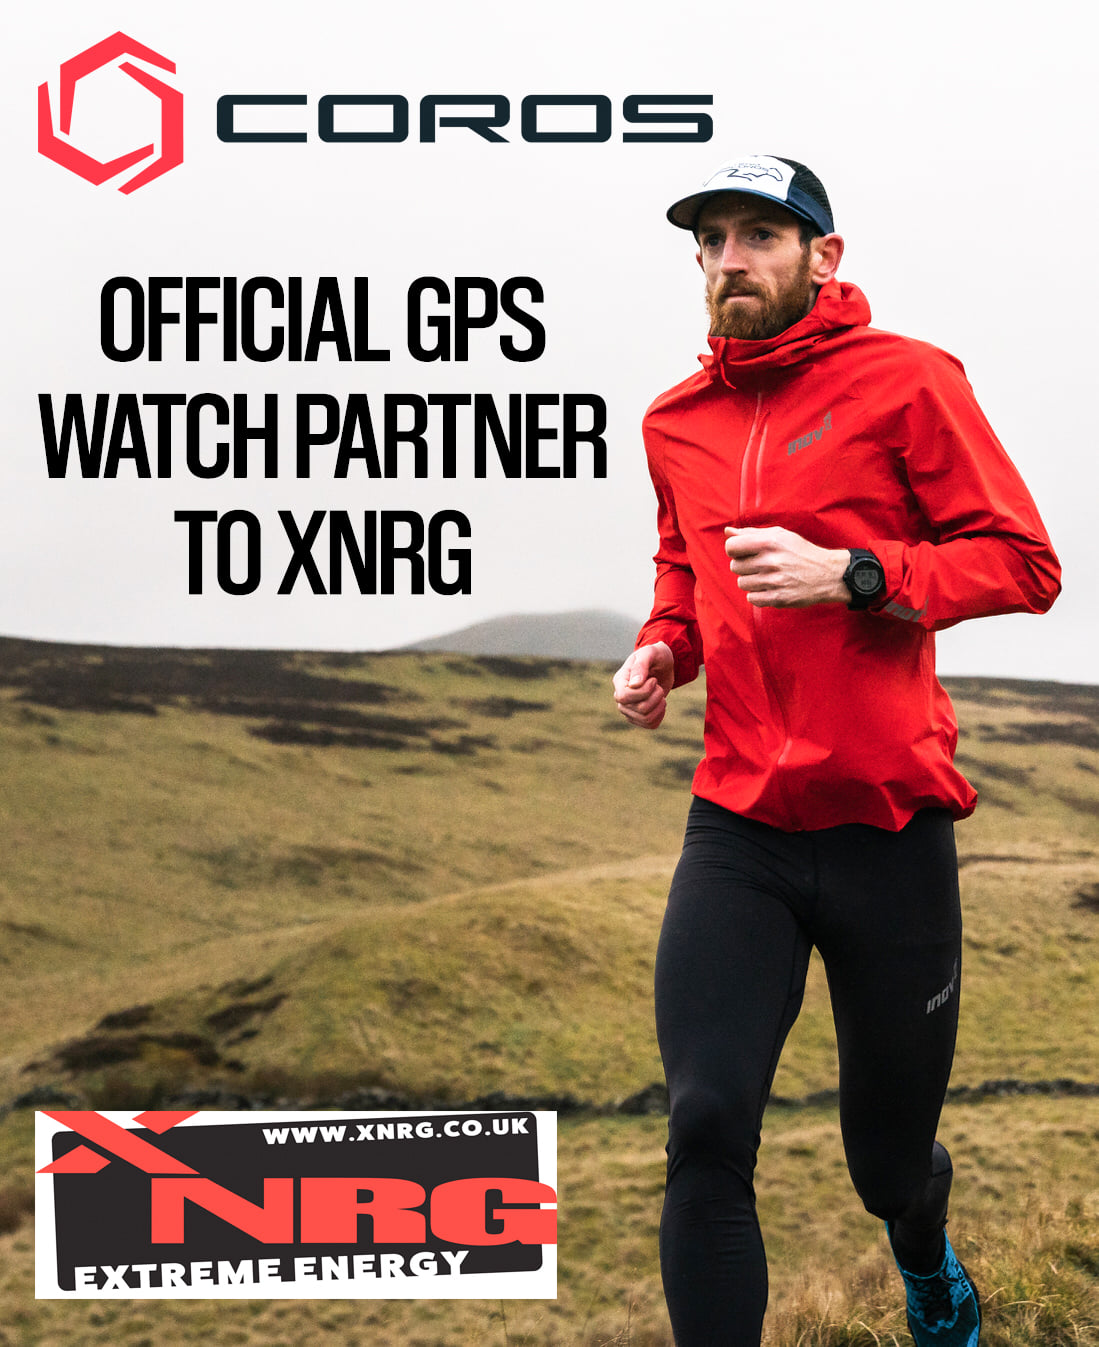 COROS Wearables partners with XNRG Events